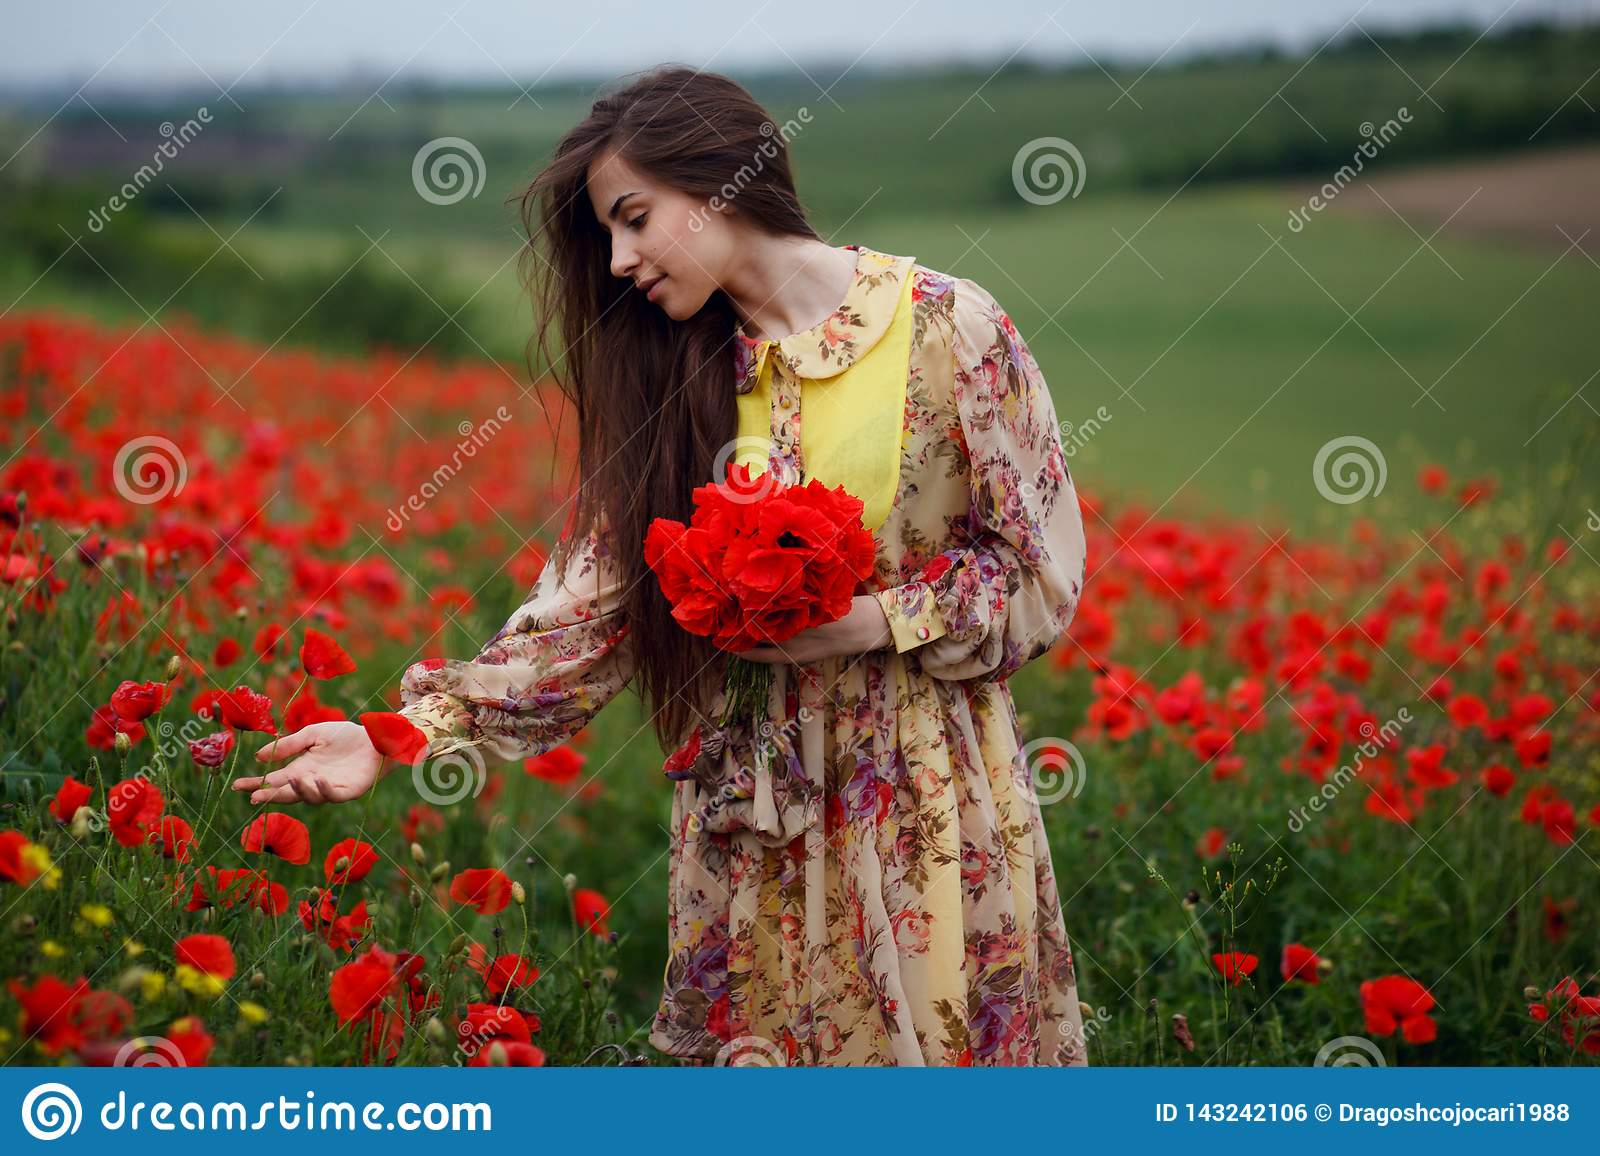 Profile of a beautiful young woman, long hair, standing in the red poppy flower field, beautiful landscape background